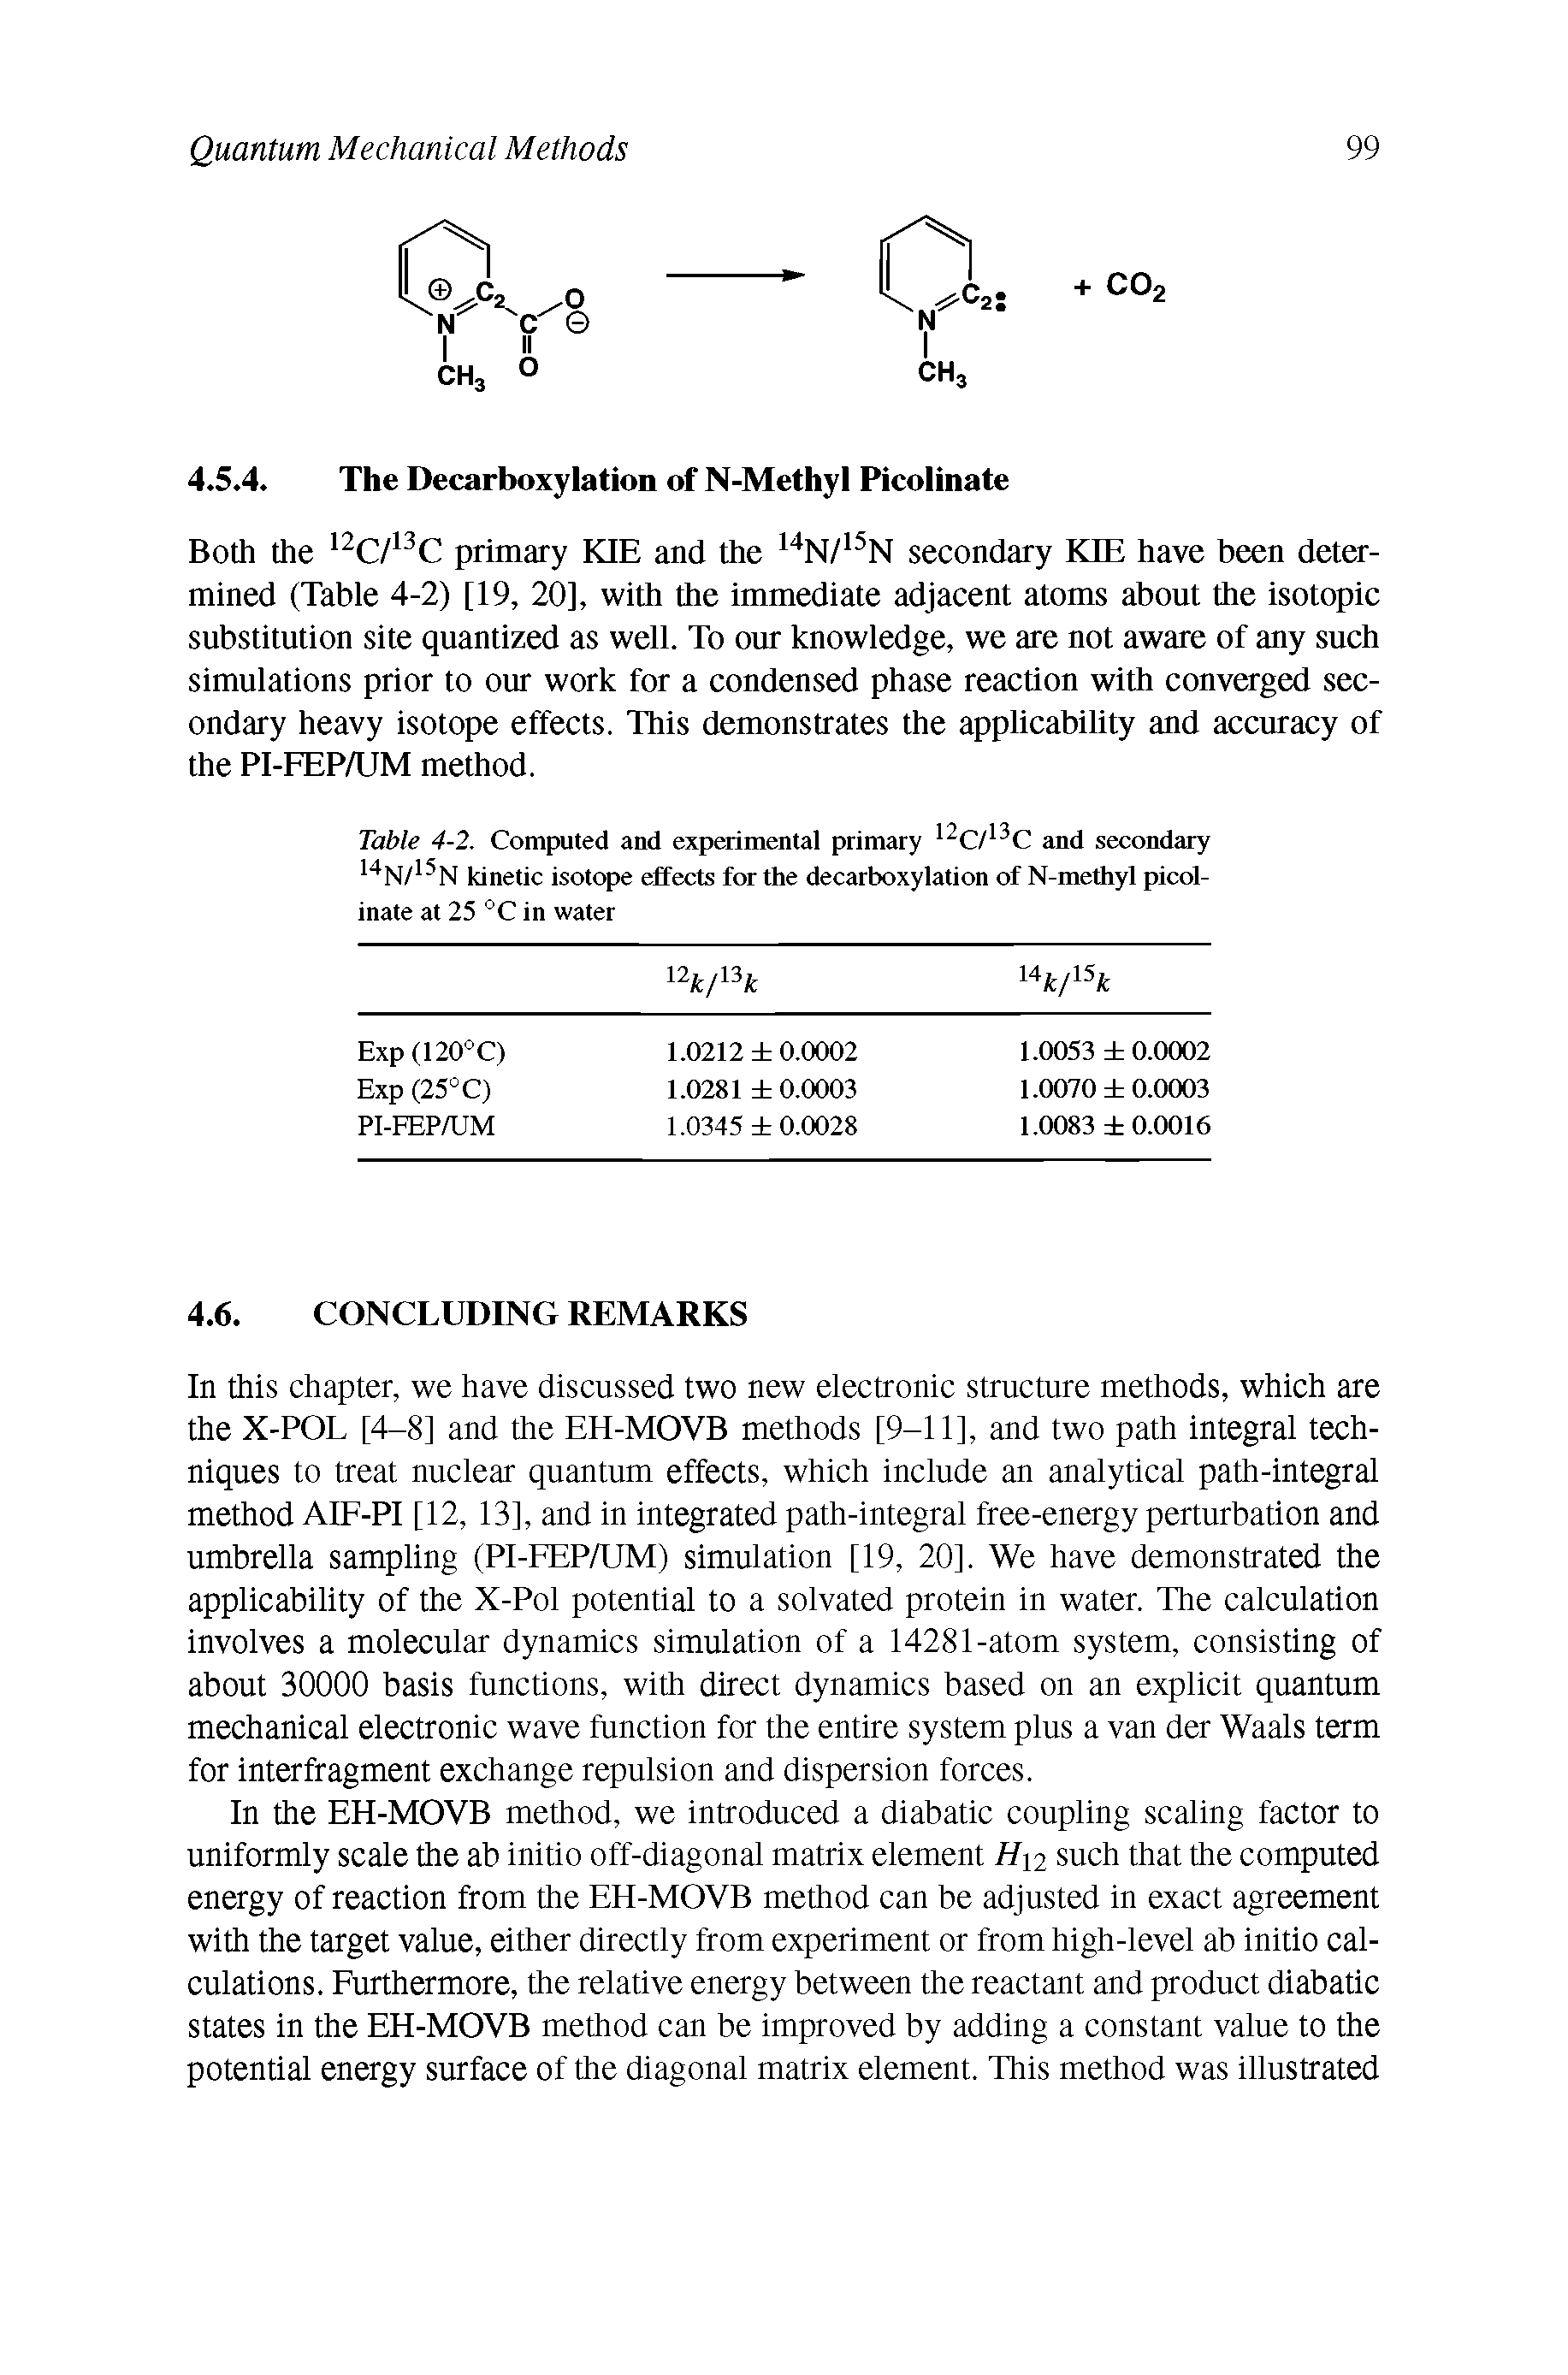 Table 4-2. Computed and experimental primary 12C/13C and secondary 14N/15N kinetic isotope effects for the decarboxylation of N-methyl picolinate at 25 °C in water...